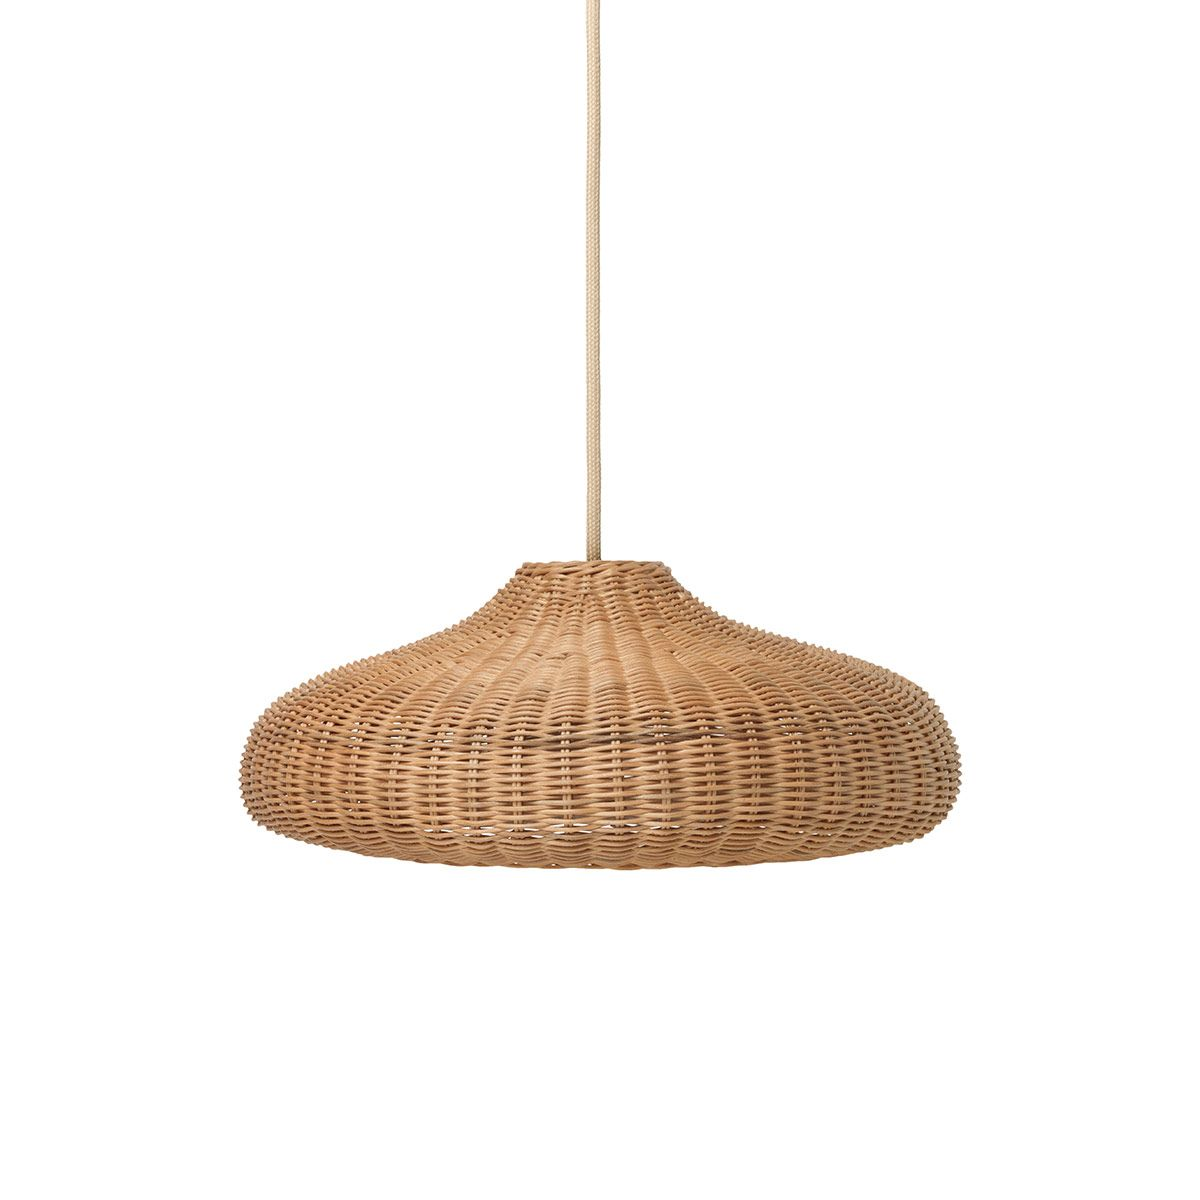 Suspension en rotin naturel tressé main Ferm Living